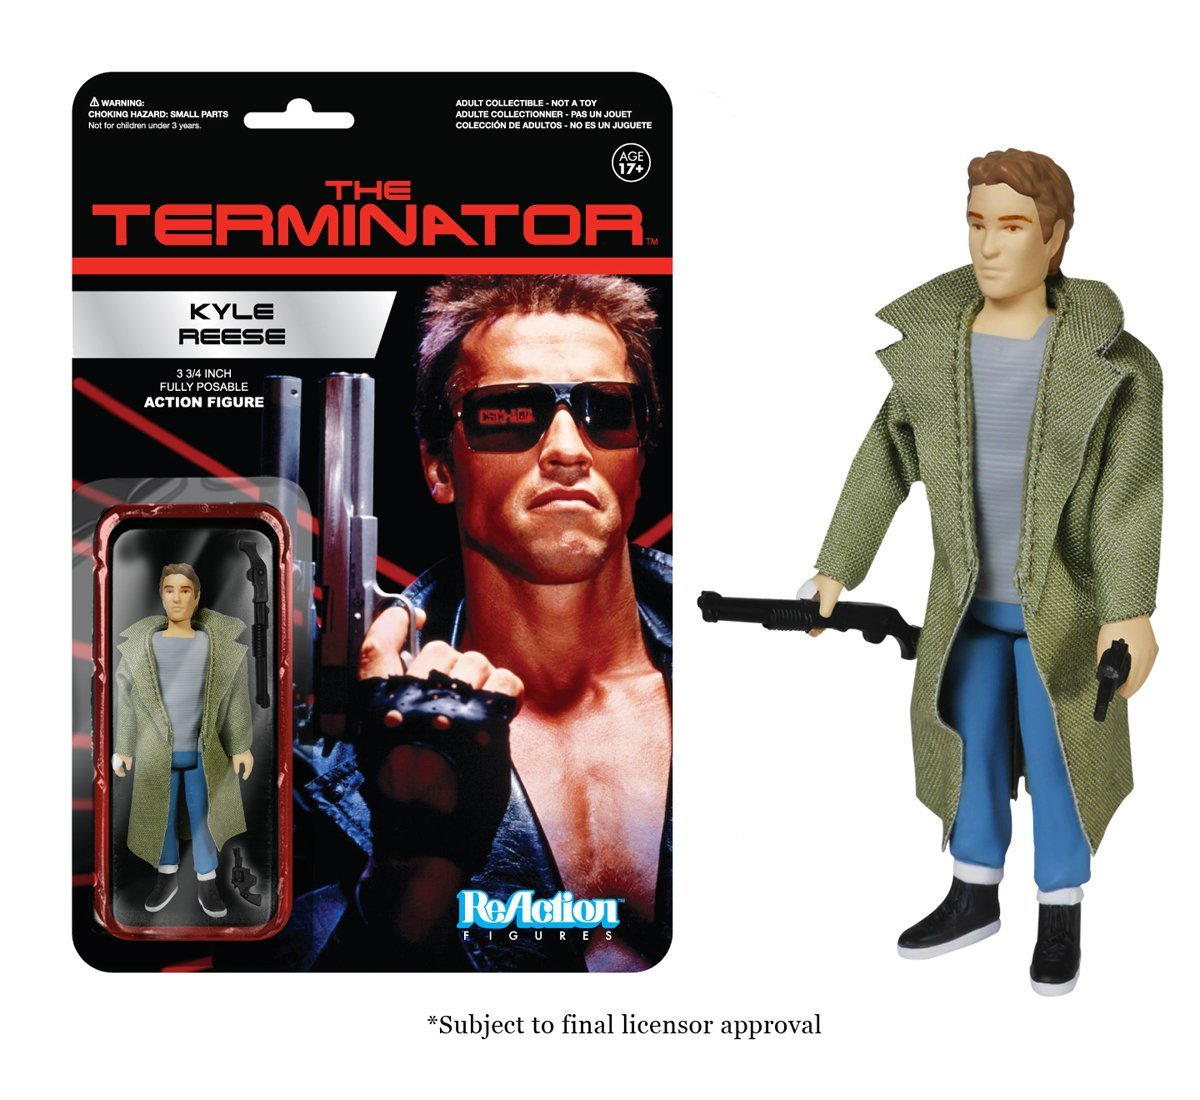 Funko <font><b>ReAction</b></font> <font><b>Figure</b></font> <font><b>The</b></font> <font><b>Terminator</b></font> - <font><b>Kyle</b></font> <font><b>Reese</b></font> Vinyl <font><b>Action</b></font> <font><b>Figure</b></font> Collectible Model Toy with Original Box